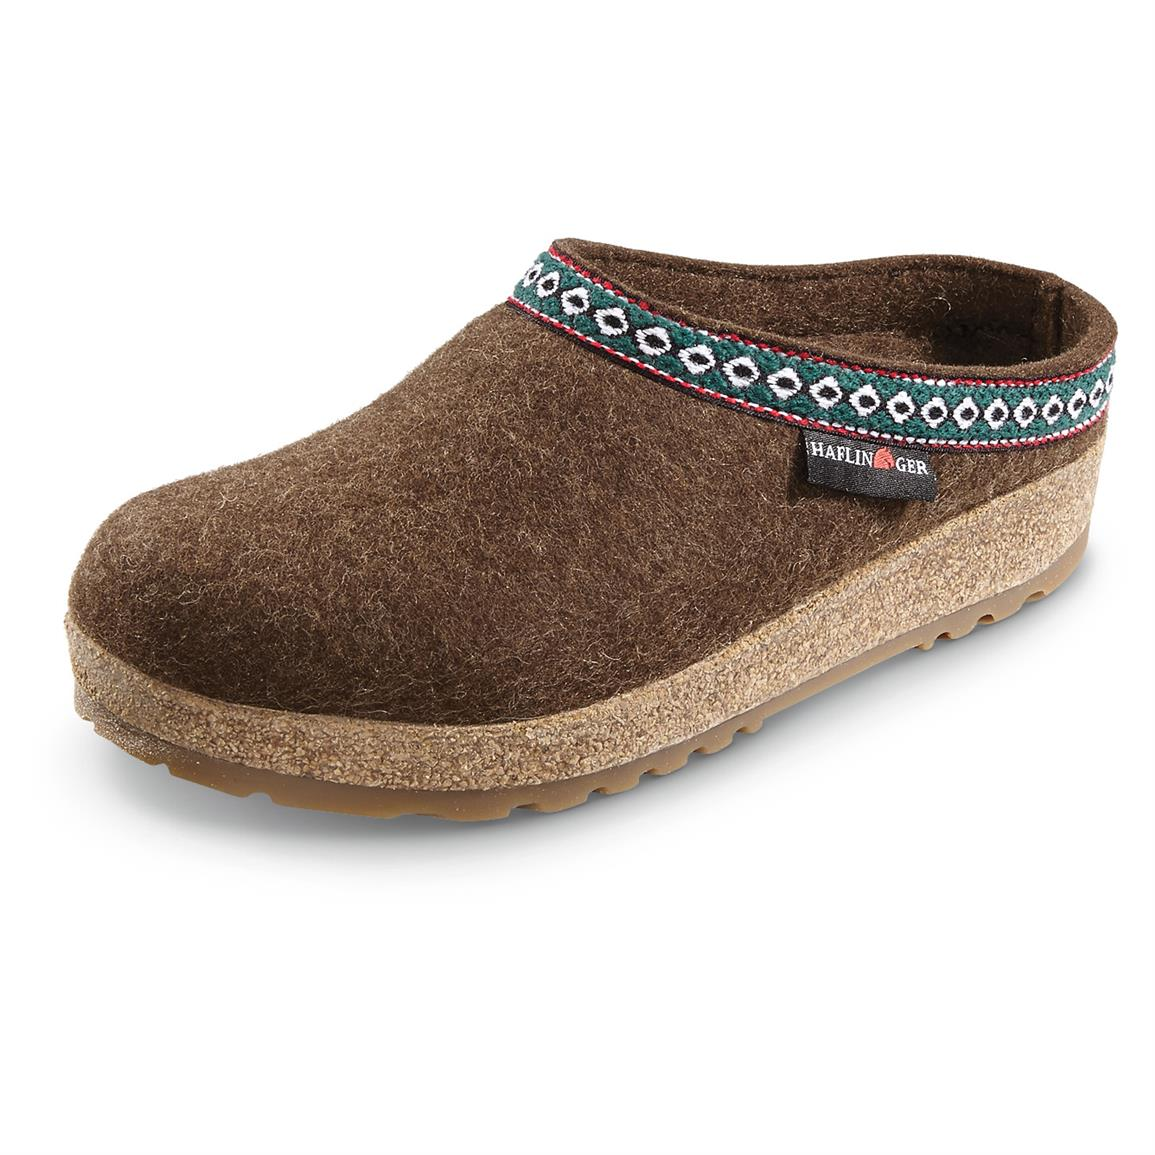 Men's and Women's Haflinger Classic Grizzly Clogs, Chocolate